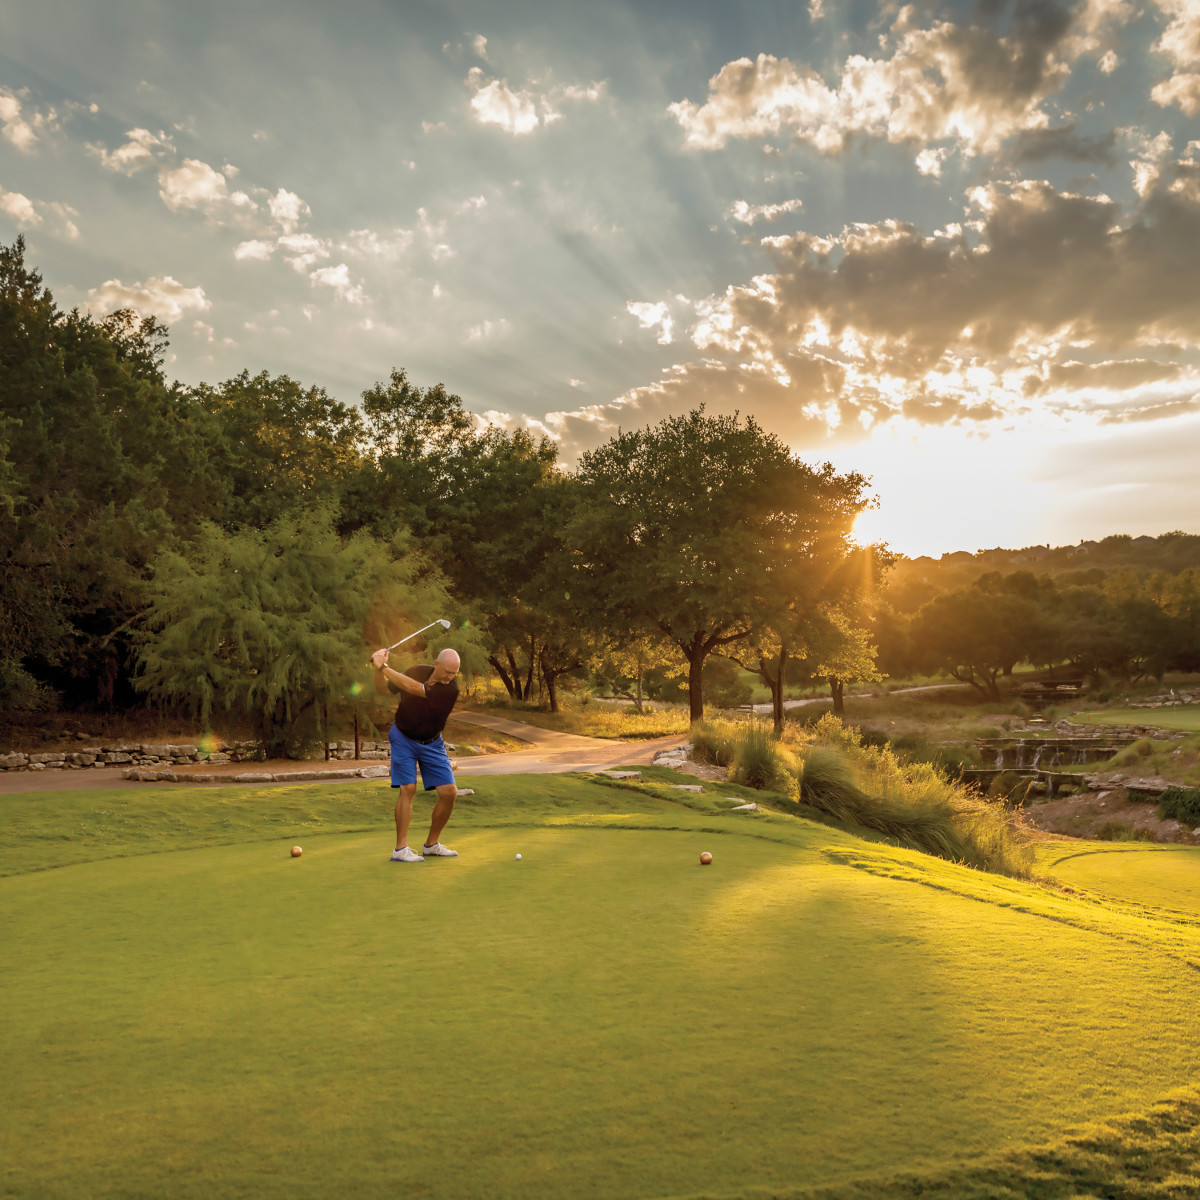 A gold course at Omni Barton Creek Resort